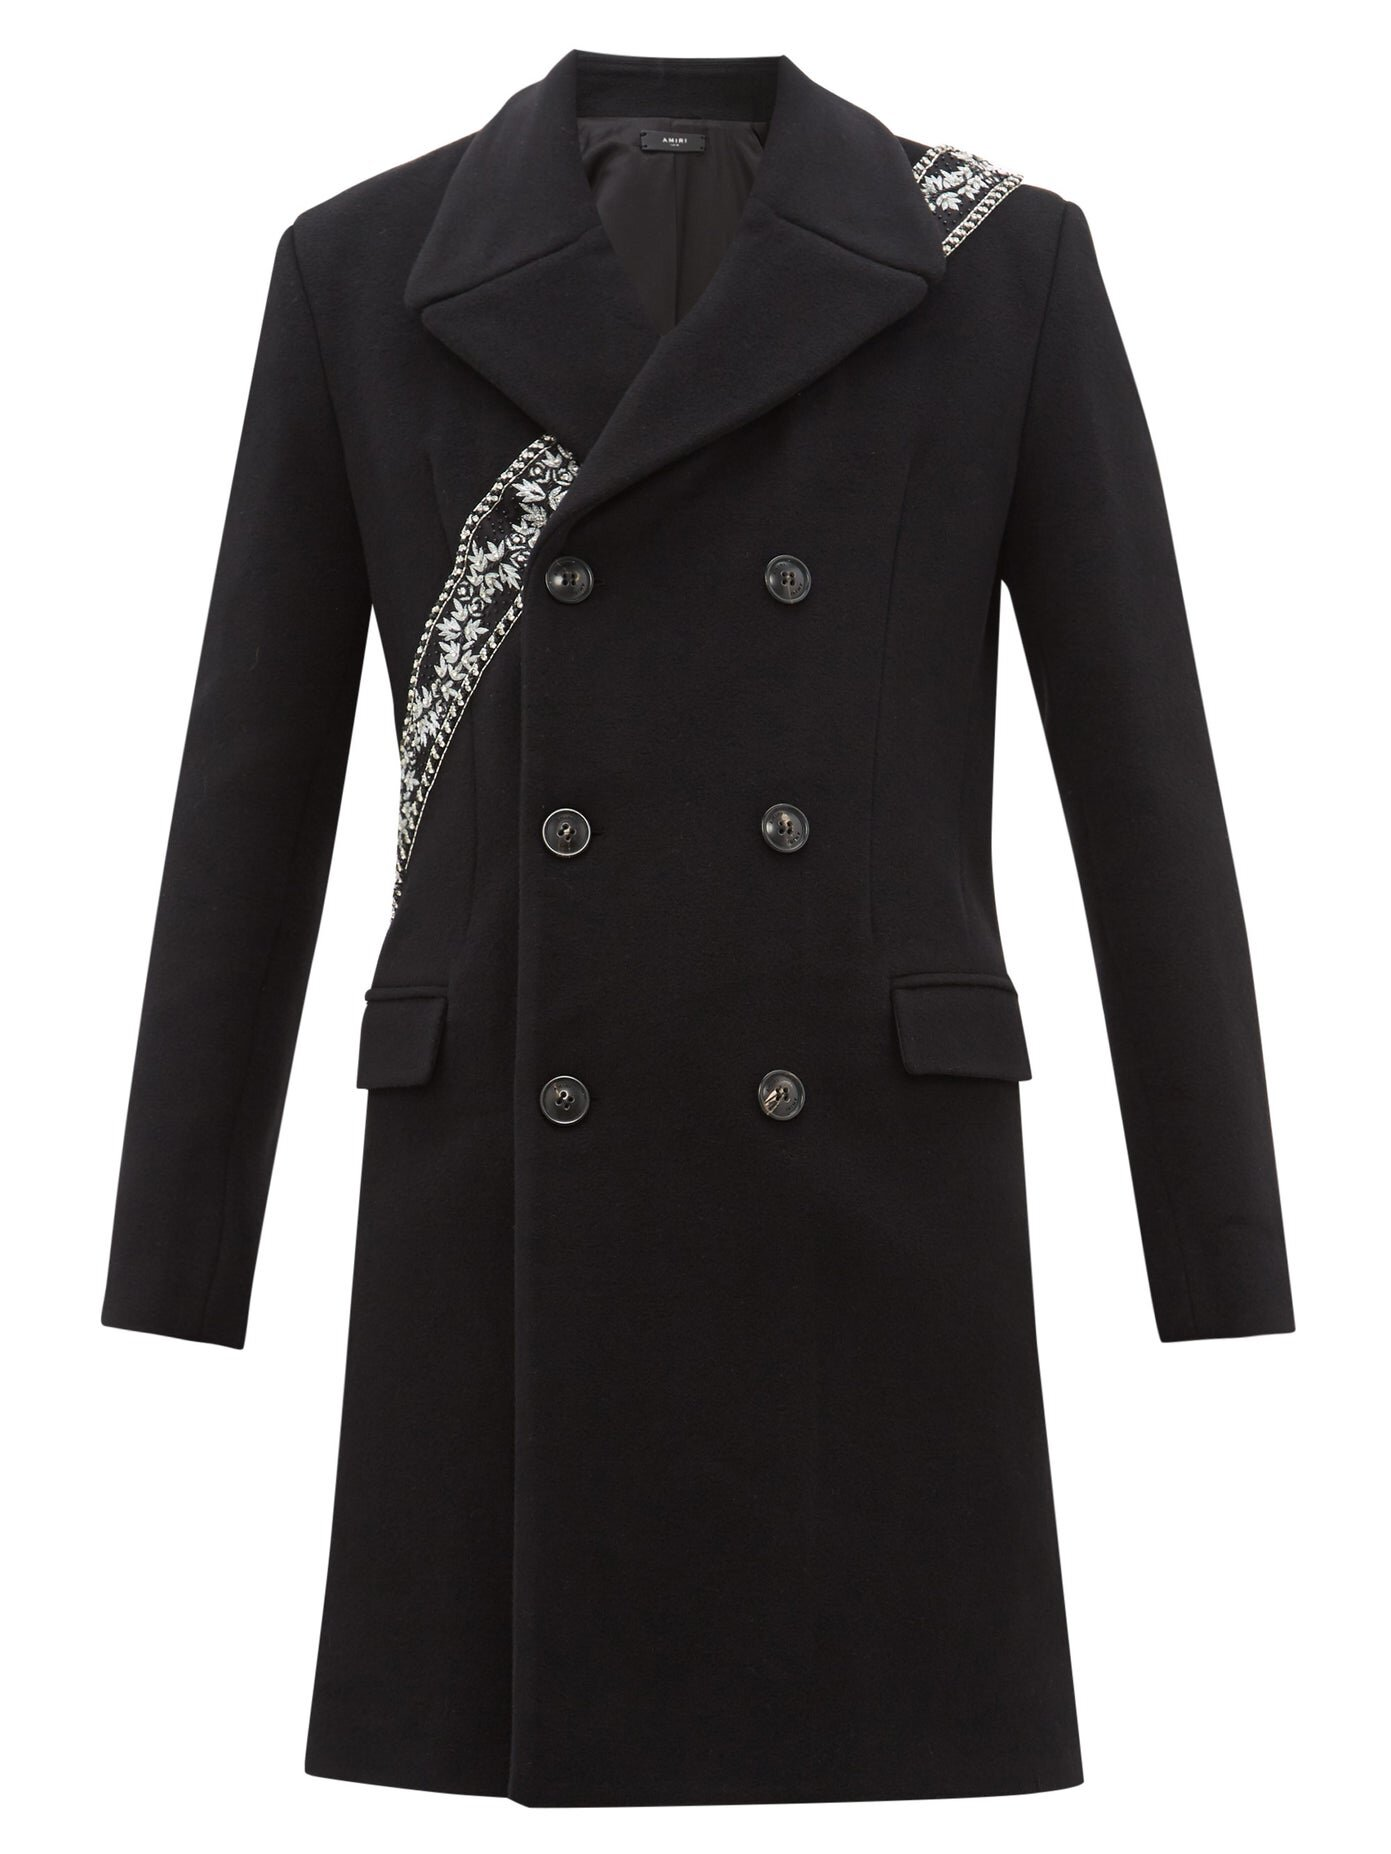 Amiri coat at Matches Fashion - £1,720 - Did you ever wish you could emerge from a tube station, effortlessly cool with a chic black overcoat and a guitar slung over your shoulder? This coat gets you there, without having to take a single guitar lesson.